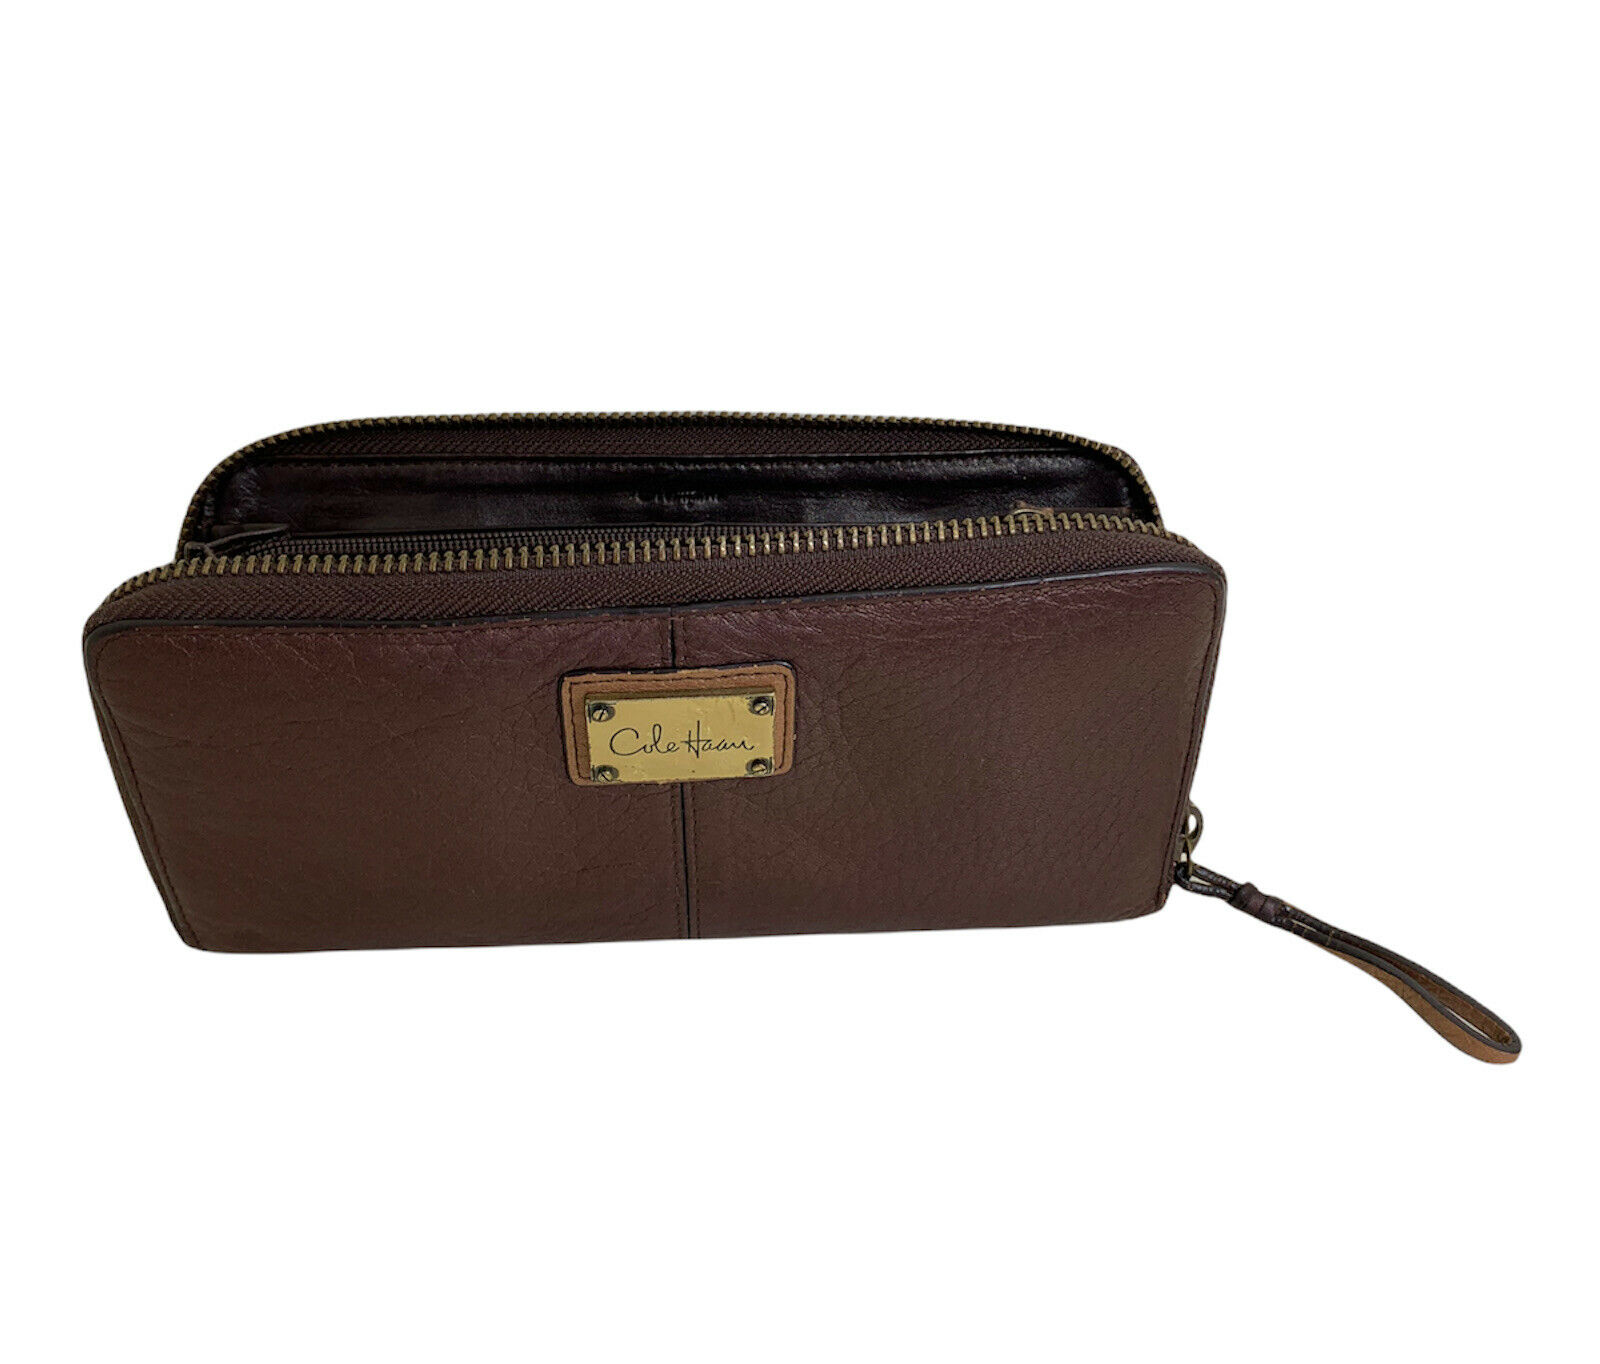 Cole Haan Womens Brown Leather Wallet Clutch